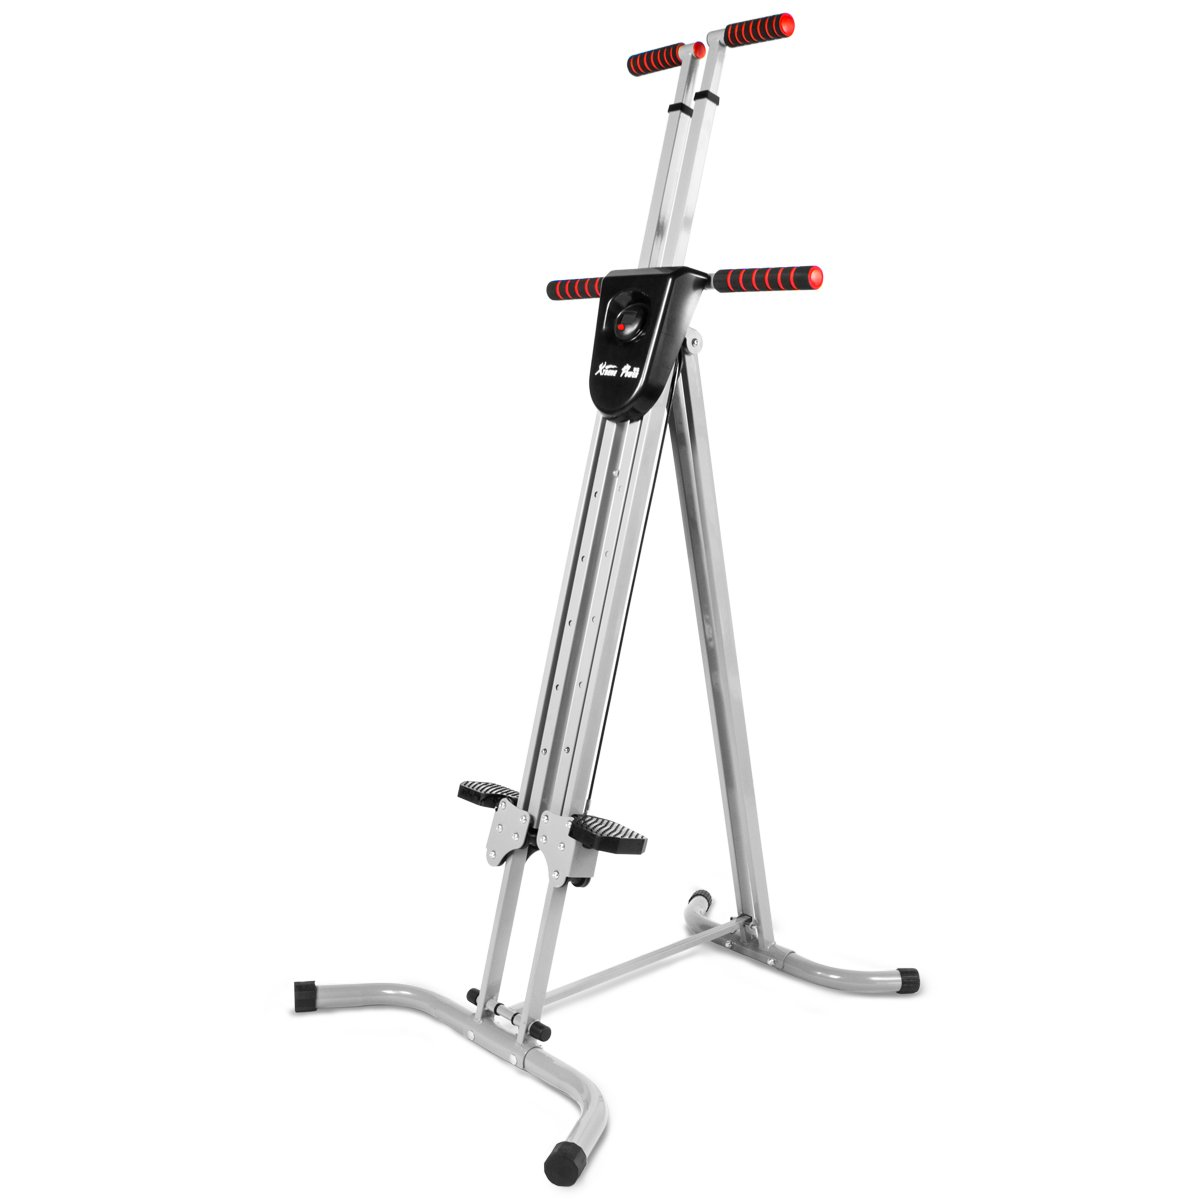 Vertical Climber Fitness Cardio Exercise Machine